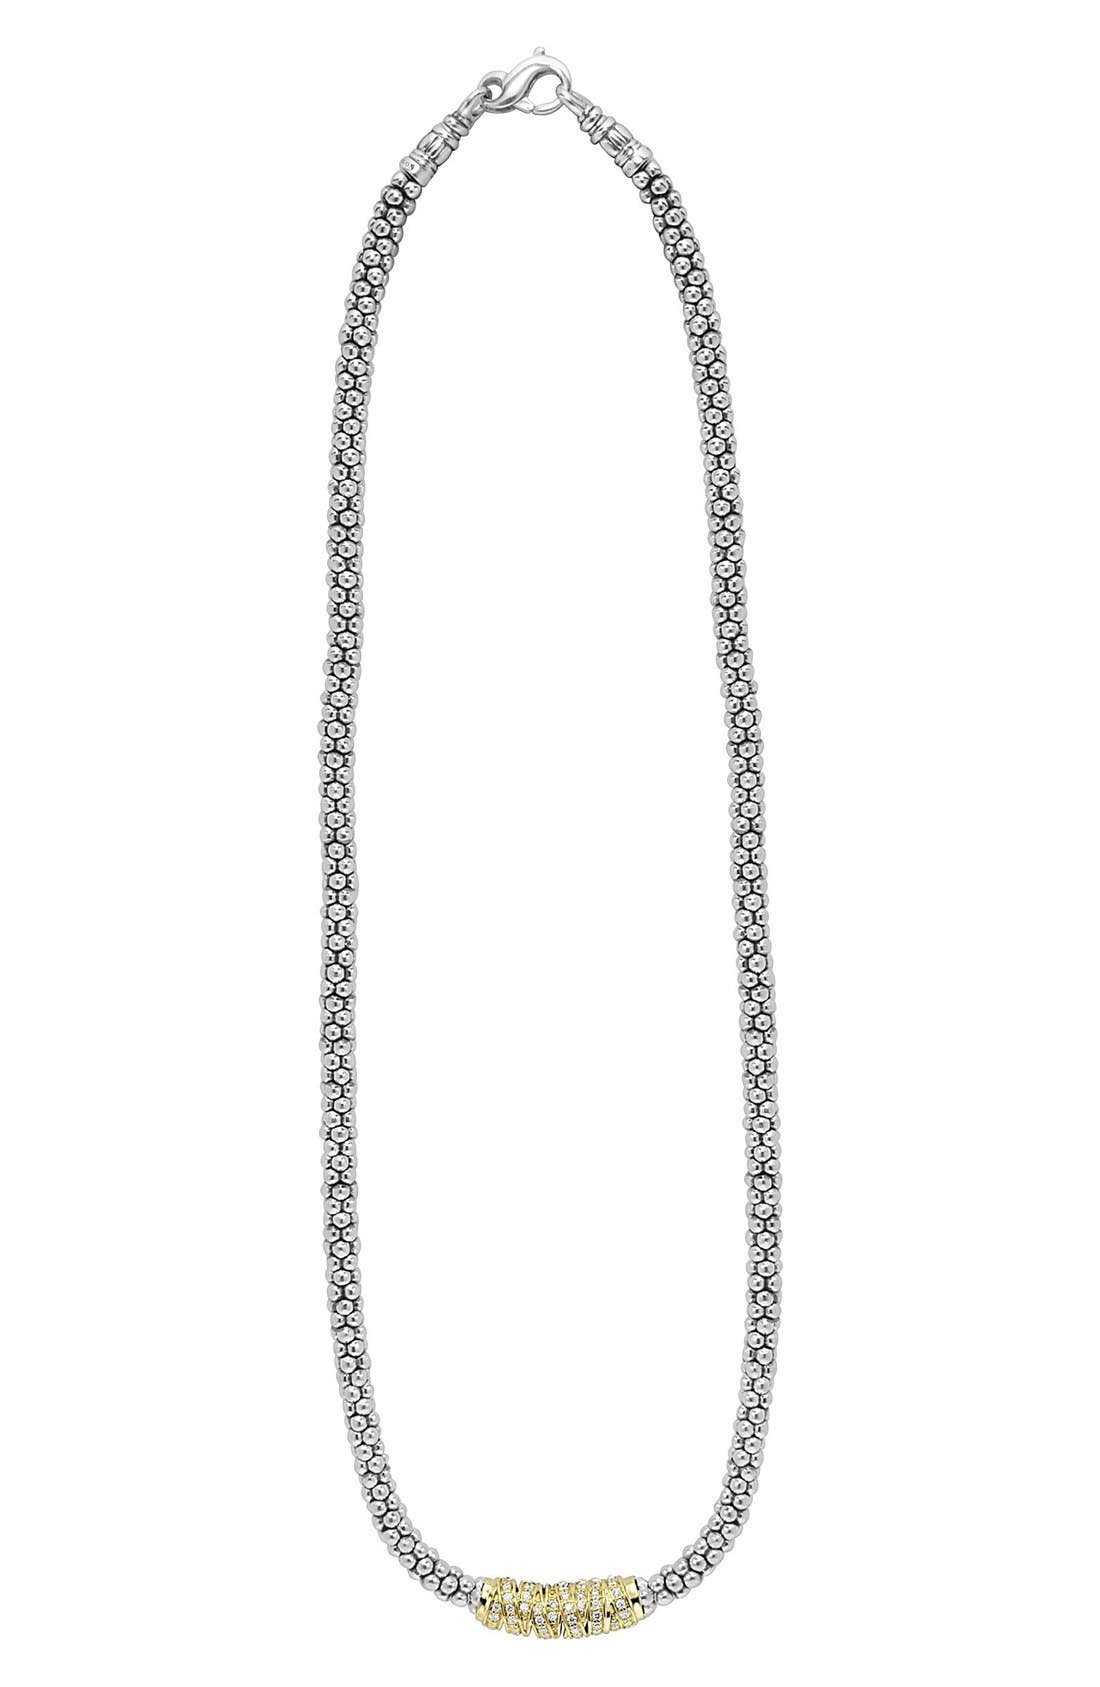 LAGOS Embrace Rope Necklace, Main, color, 040